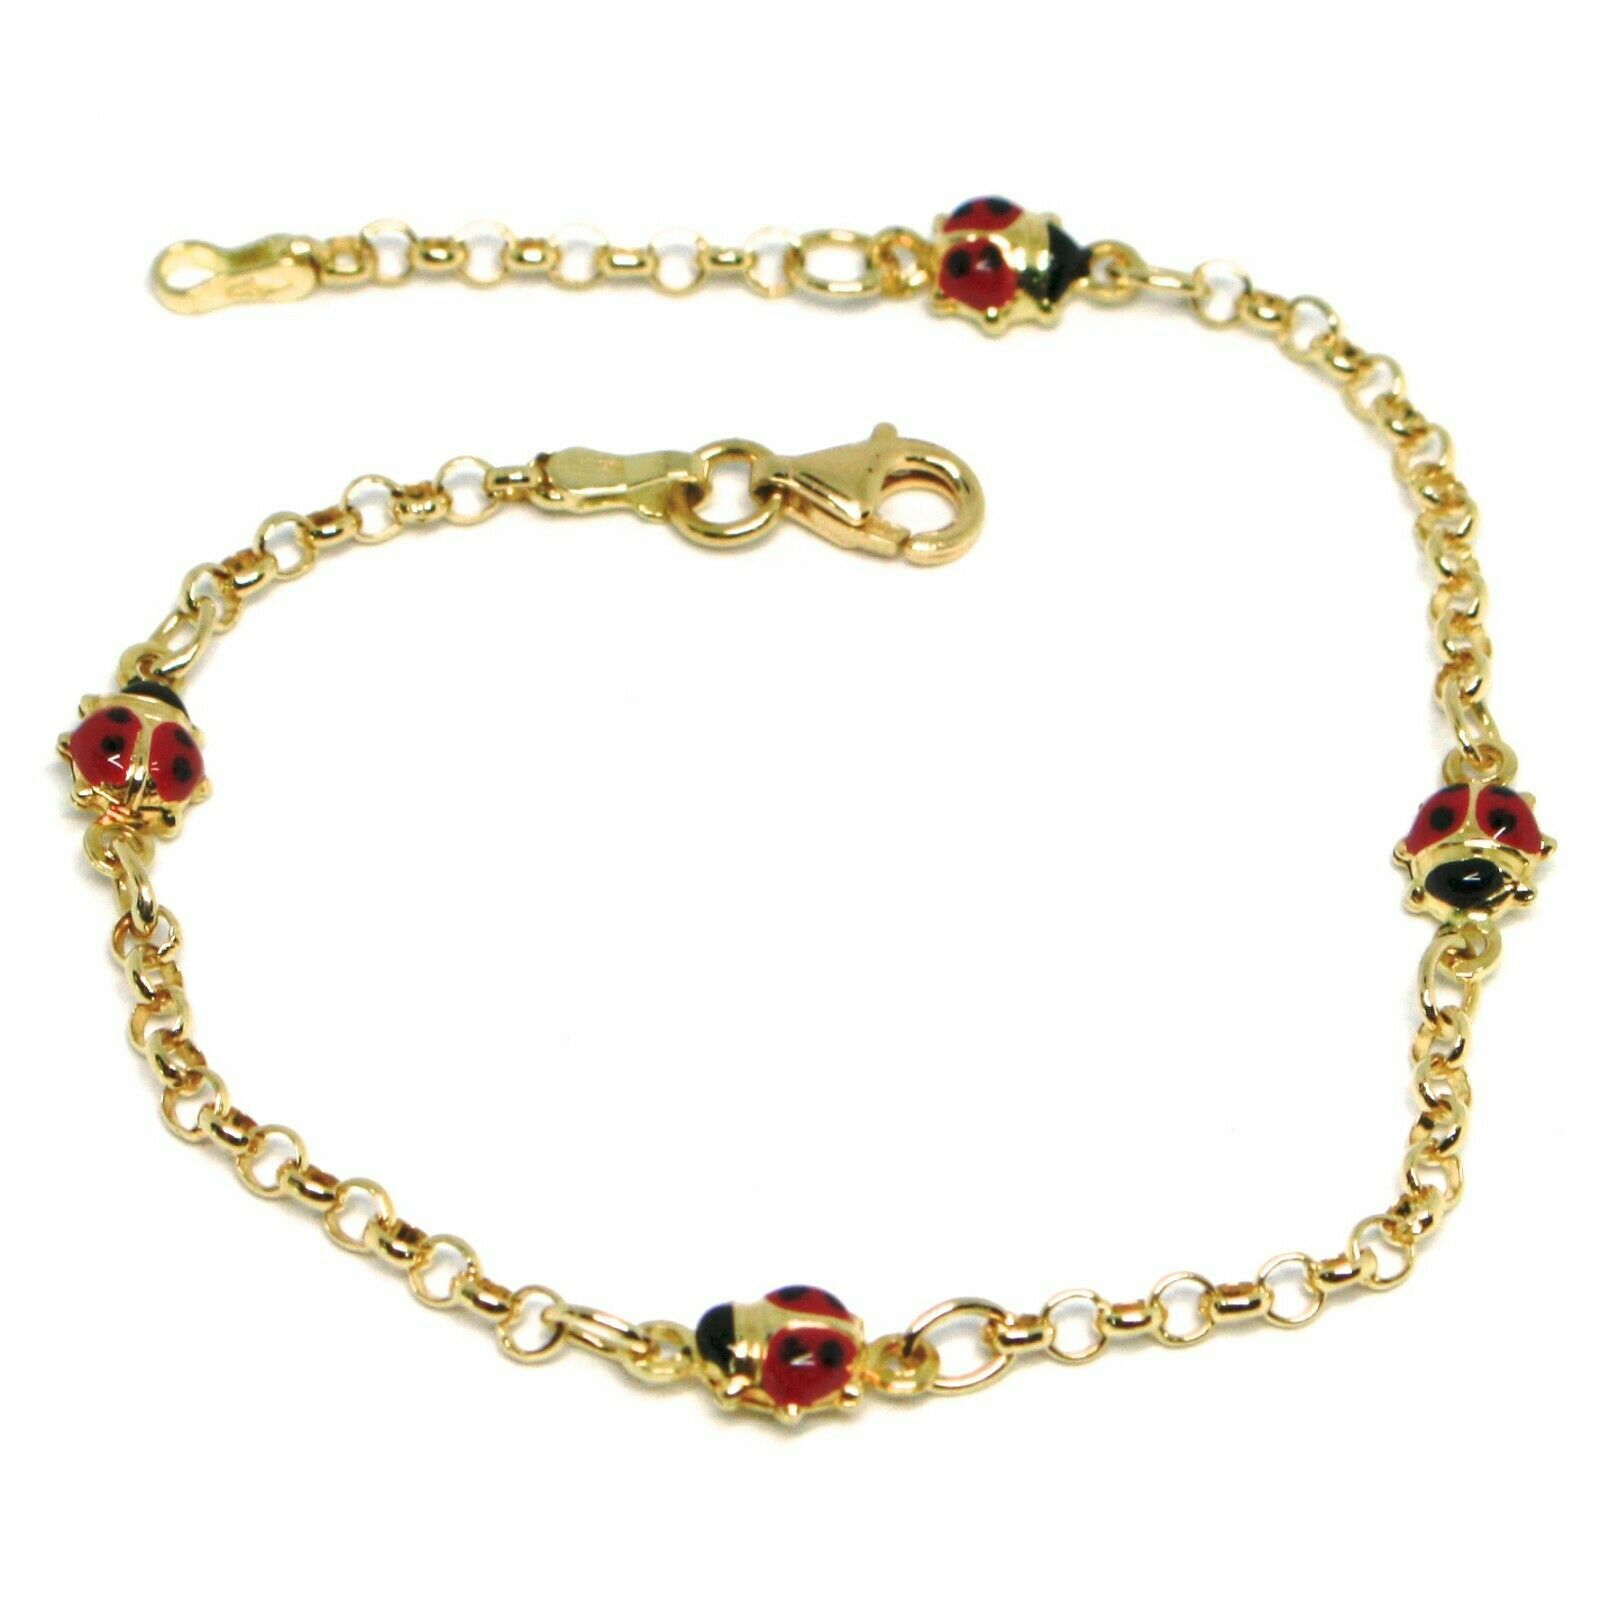 Bracelet Yellow Gold 18K 750, for Girl, 4 Ladybugs Enamel, Alternate, 17 CM